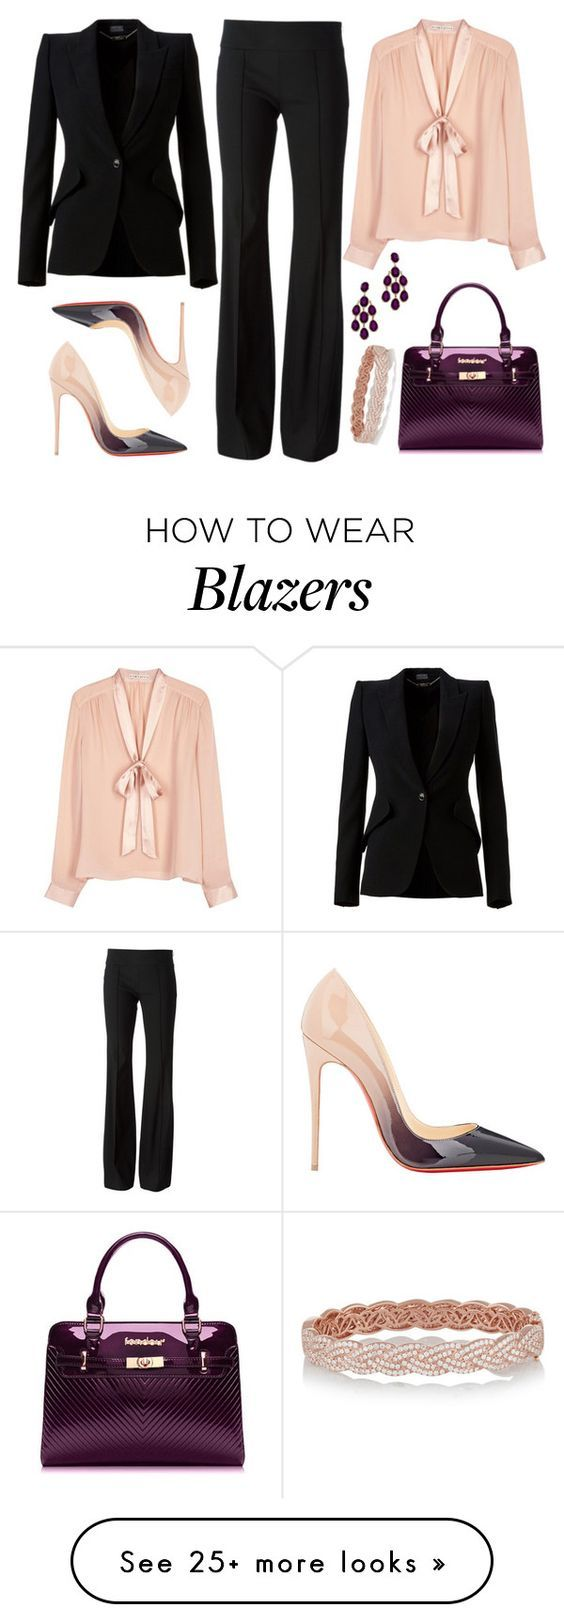 """Untitled #2704"" by emmafazekas on Polyvore featuring Blu Bijoux, Alice + Olivia, Michael Kors, Alexander McQueen, Christian Louboutin and Anita Ko:"